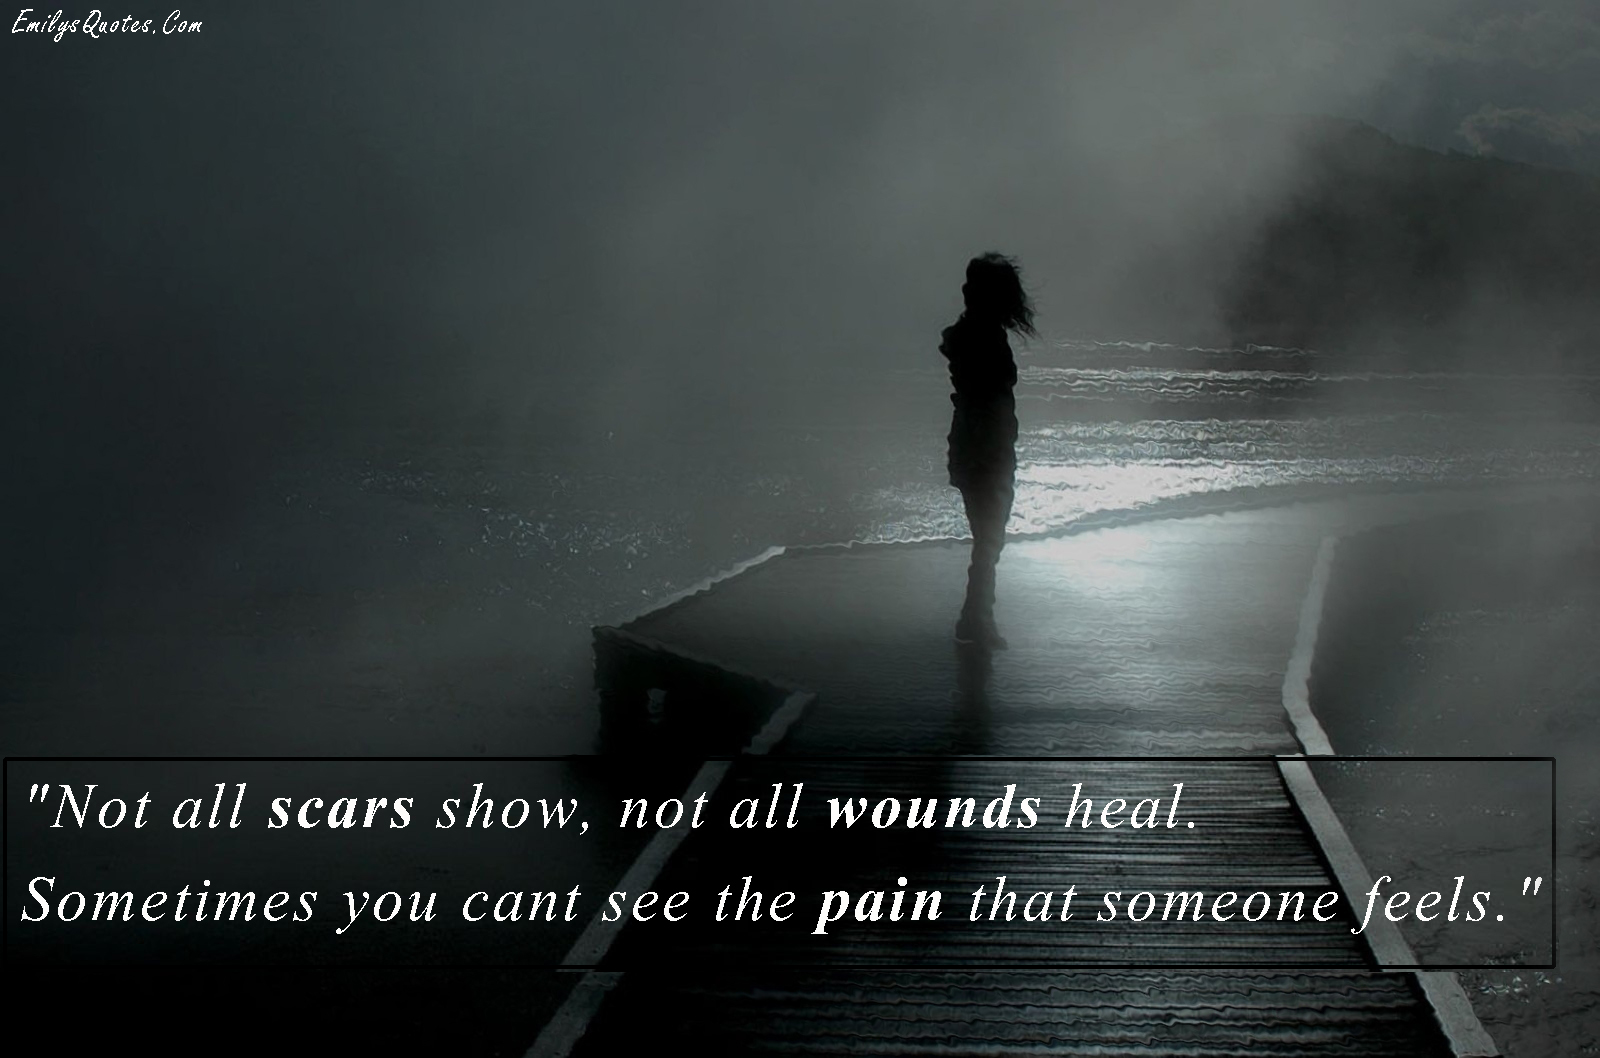 EmilysQuotes.Com - scars, wounds, pain, feelings, understanding, sad, negative, unknown